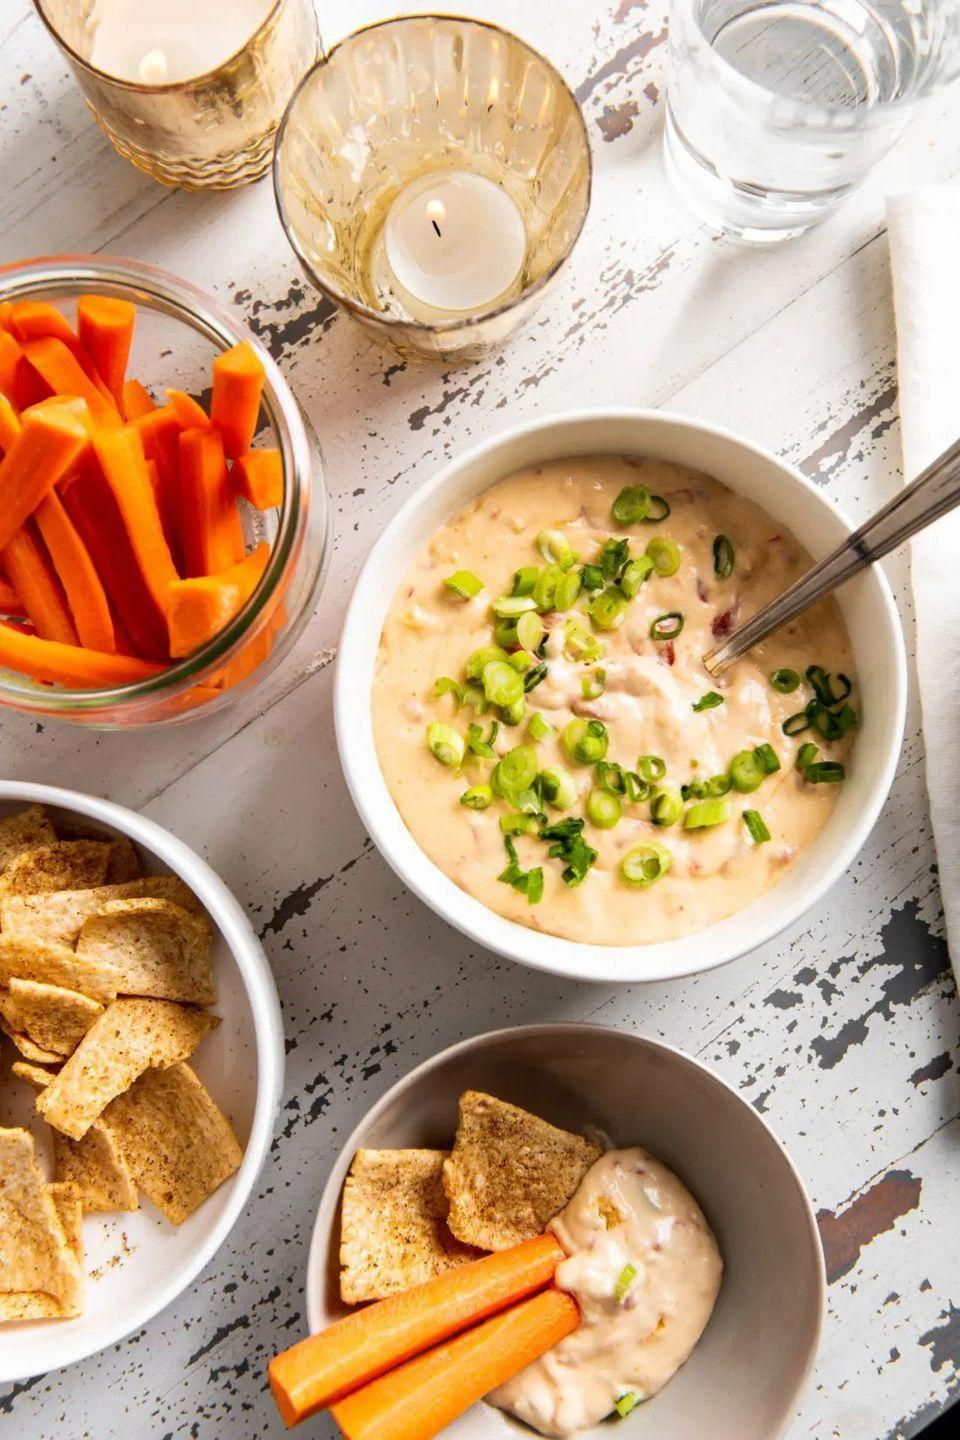 """<p>Pop this Southern staple into the slow cooker for a warm dip that's great for the holidays. You can serve it with veggies or your favorite crackers. </p><p><strong>Get the recipe at <a href=""""https://themom100.com/recipe/easy-slow-cooker-hot-pimento-cheese-dip/"""" rel=""""nofollow noopener"""" target=""""_blank"""" data-ylk=""""slk:The Mom 100"""" class=""""link rapid-noclick-resp"""">The Mom 100</a>.</strong></p>"""